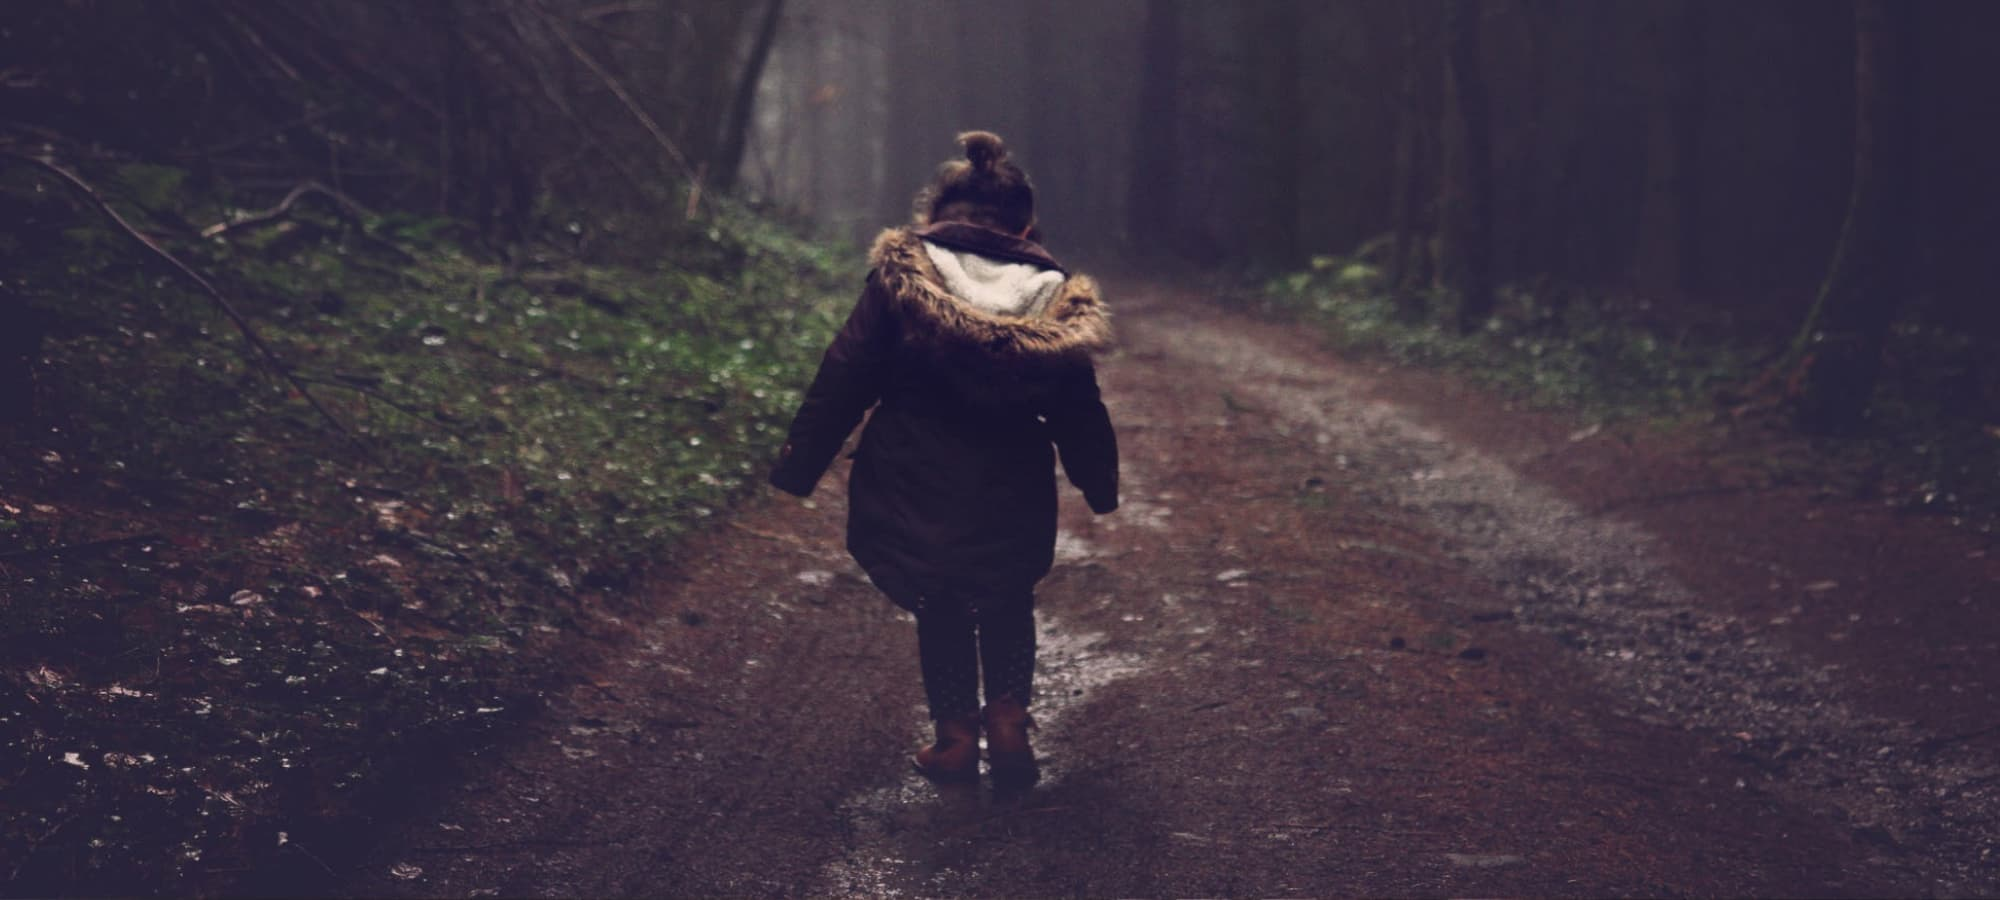 an orphan walking by themselves in the woods